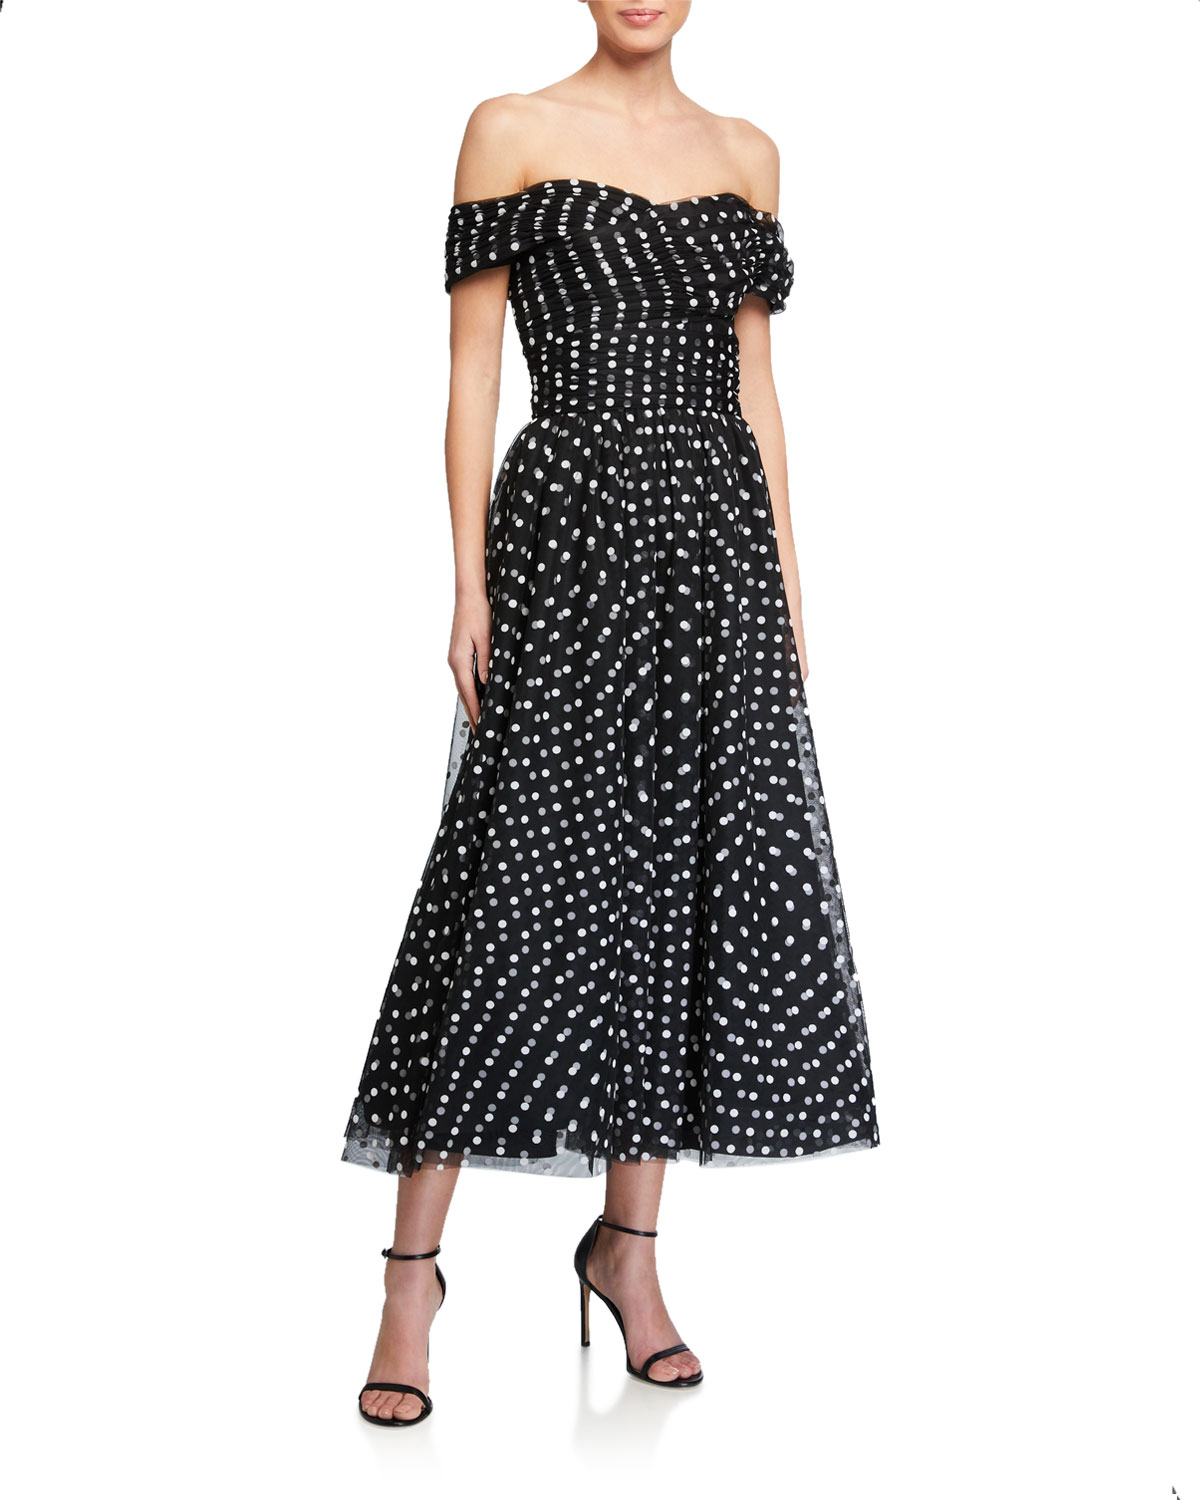 Shoshanna Meraki Off-the-Shoulder Sheer Polka-Dot Tulle Dress